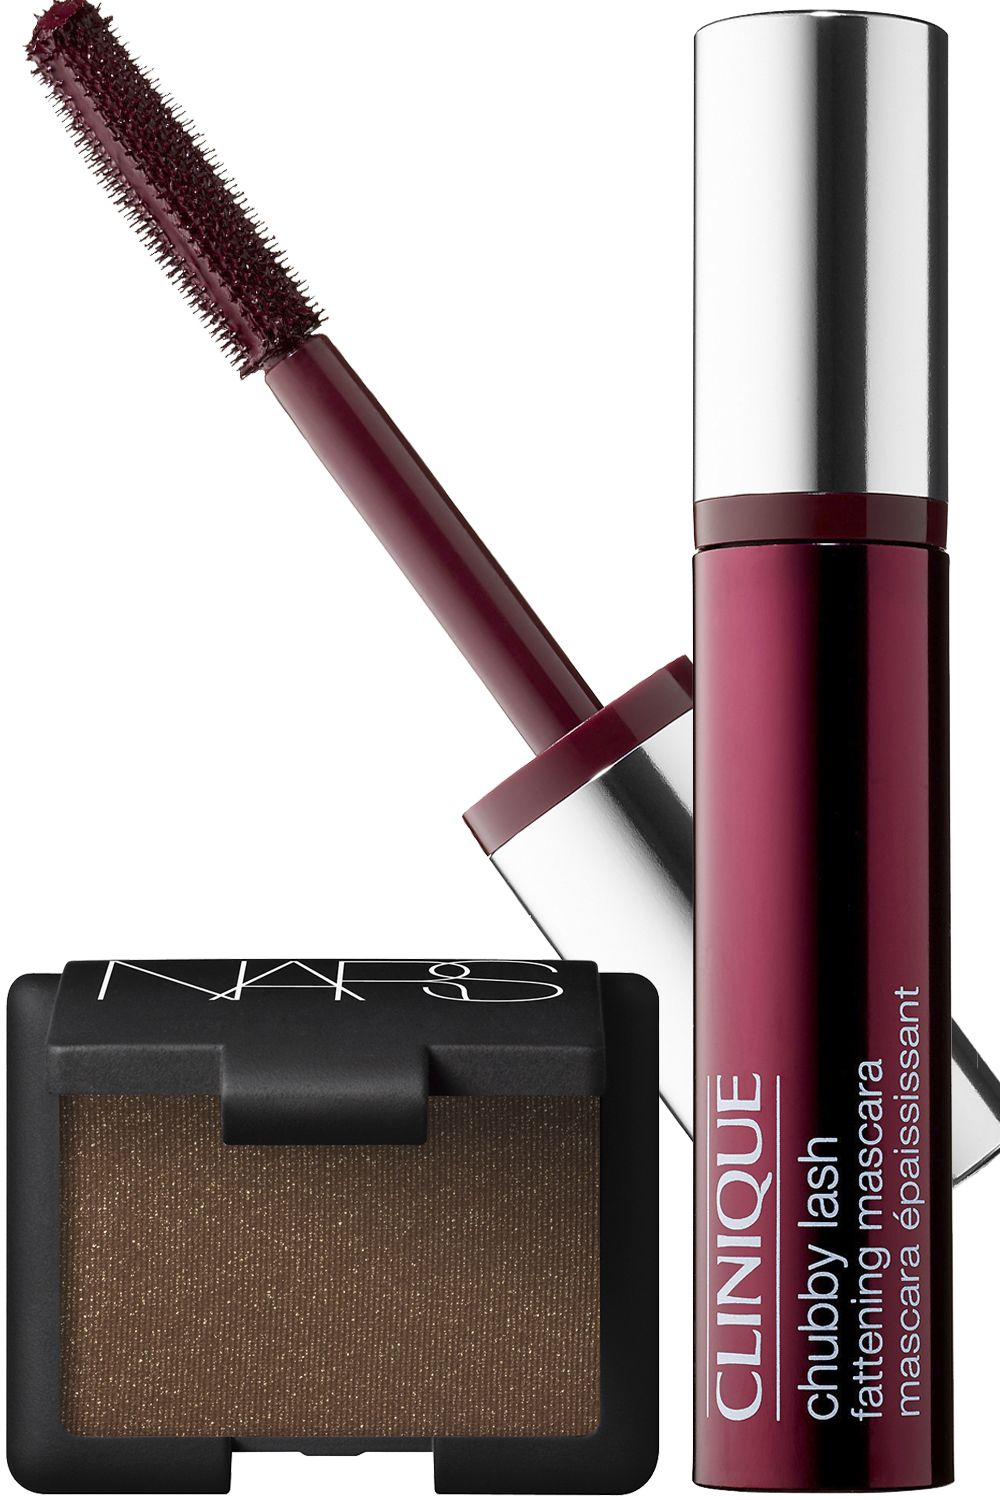 "<p>A brown shadow with shimmer flecks will bring out the lighter tones in the eyes and add a rich, earthy element. And because green and red are complementary colors on the color wheel, you can be sure that anything from a reddish plum to a burgundy wine shade of mascara will enhance your look. </p><p><strong>NARS</strong> Shimmer Eyeshadow in Galapagos, $25, <a href=""https://www.narscosmetics.com/USA/galapagos-shimmer-eyeshadow/0607845020608.html"" target=""_blank"">narscosmetics.com</a>; <strong>Clinique </strong>Chubby Lash Fattening Mascara in Bodacious Black Honey, $17, <a href=""http://www.sephora.com/chubby-lash-fattening-mascara-P398905?skuId=1711654&browserdefault=true&om_mmc=ppc-GG&mkwid=sXoZ24xbx&pcrid=49113162399&pdv=c&site=_search&country_switch=&lang=en&gclid=Cj0KEQiAsP-2BRCFl4Lb2NTJttEBEiQAmj2tbZSWXIxXJiBevRgOm6IXZfGh7ULOUOpdQISQUBnk5uoaAjyg8P8HAQ""><u>sephora.com</u></a>.</p>"